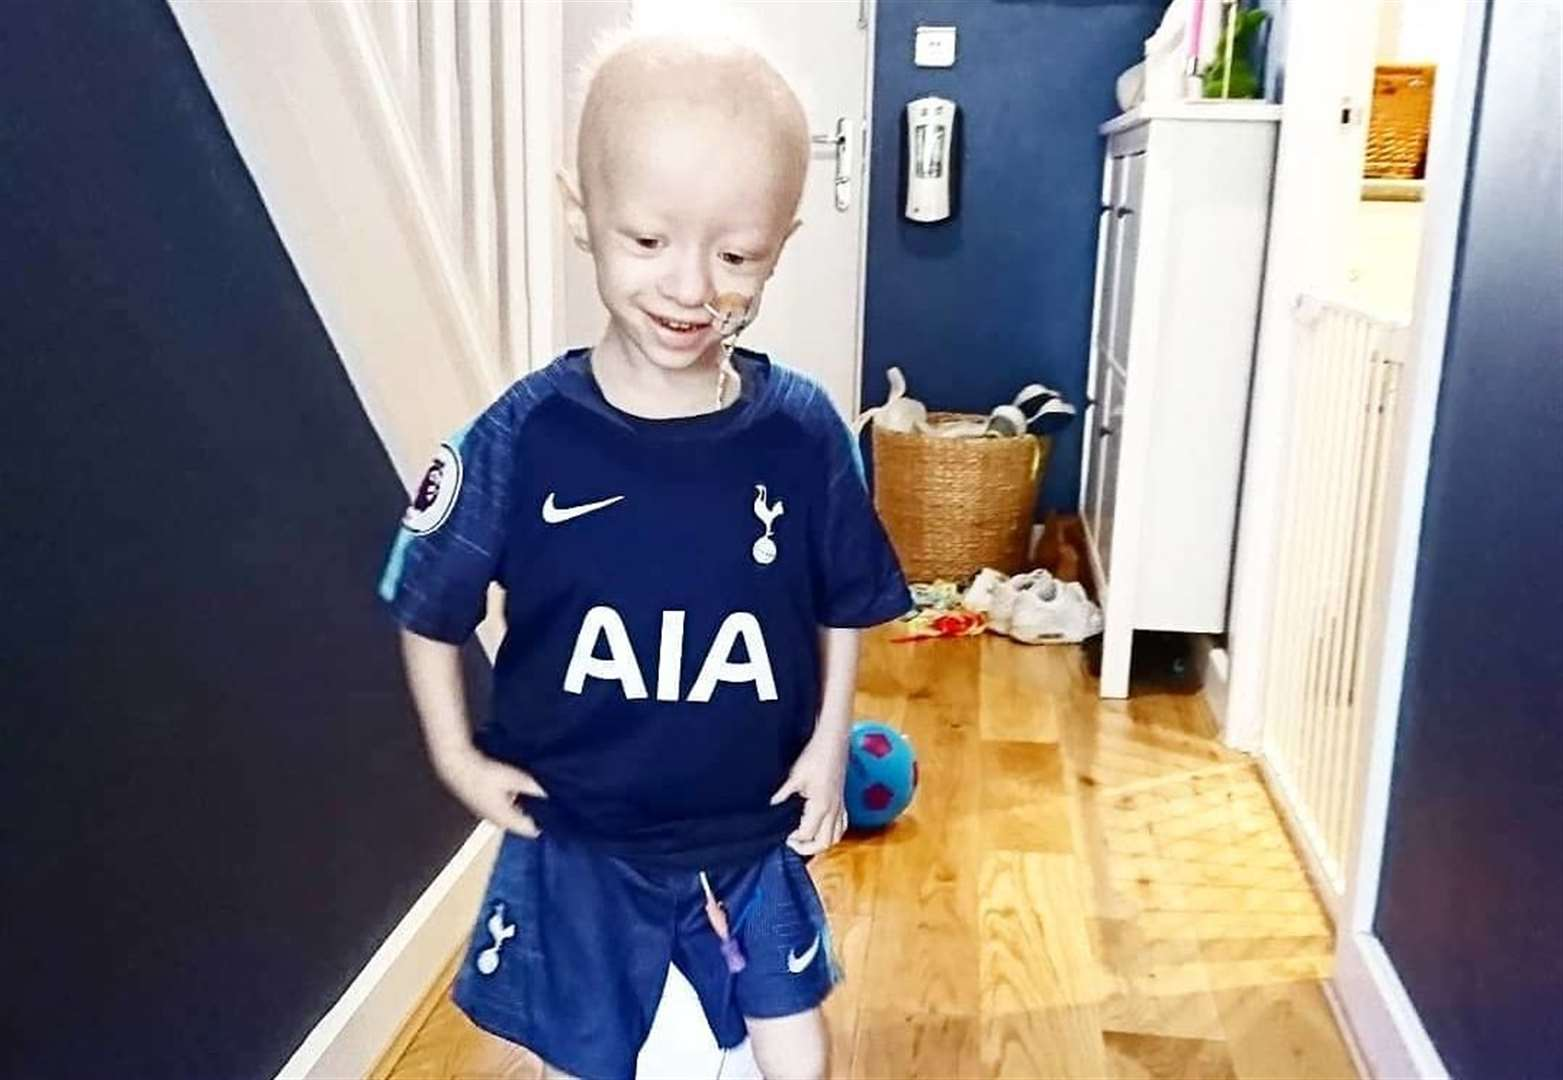 Gin tasting and celebrity football to boost £200,000 appeal for cancer toddler